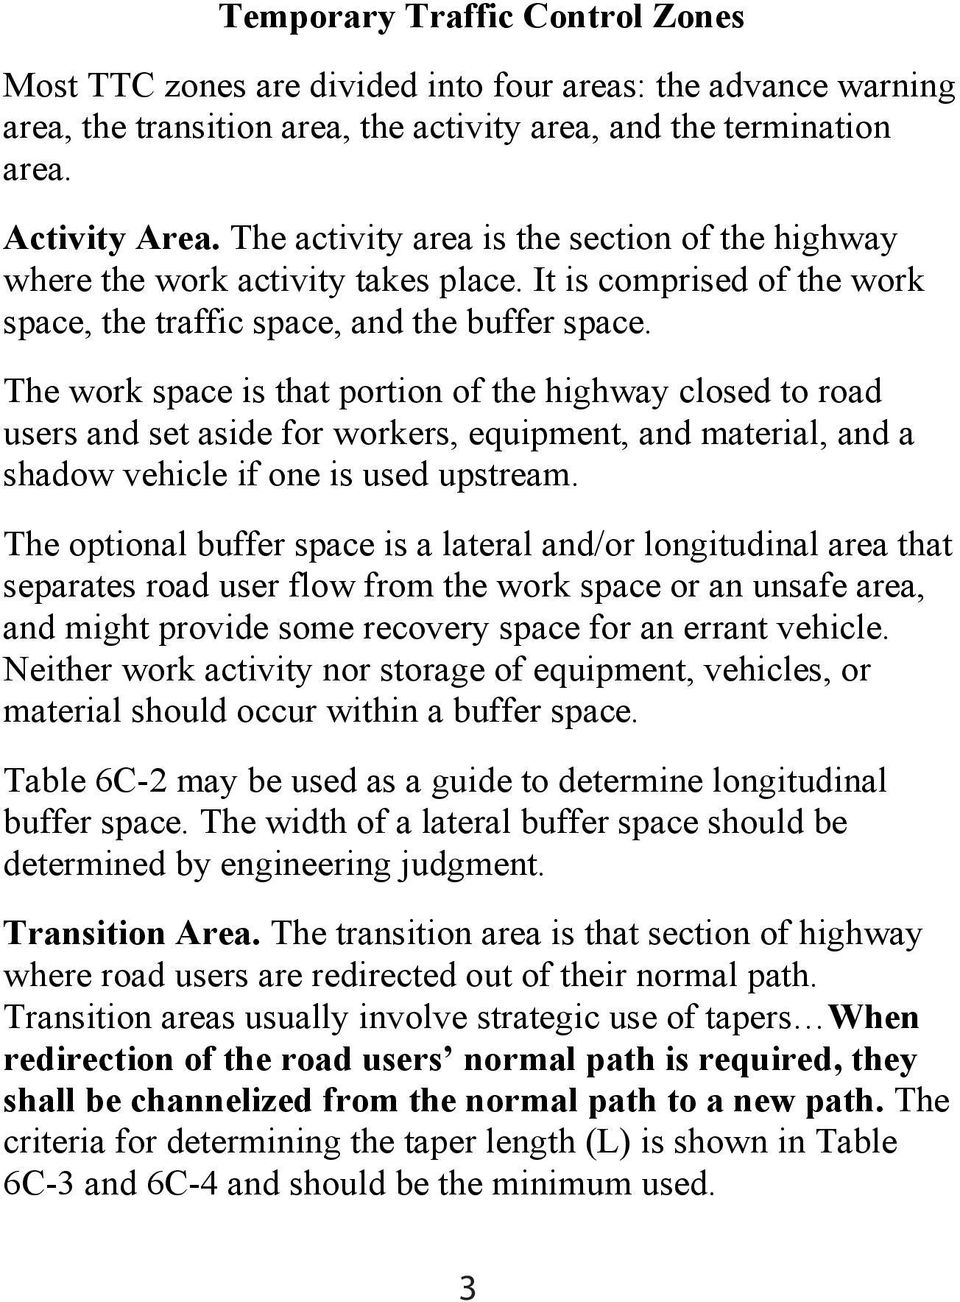 The work space is that portion of the highway closed to road users and set aside for workers, equipment, and material, and a shadow vehicle if one is used upstream.